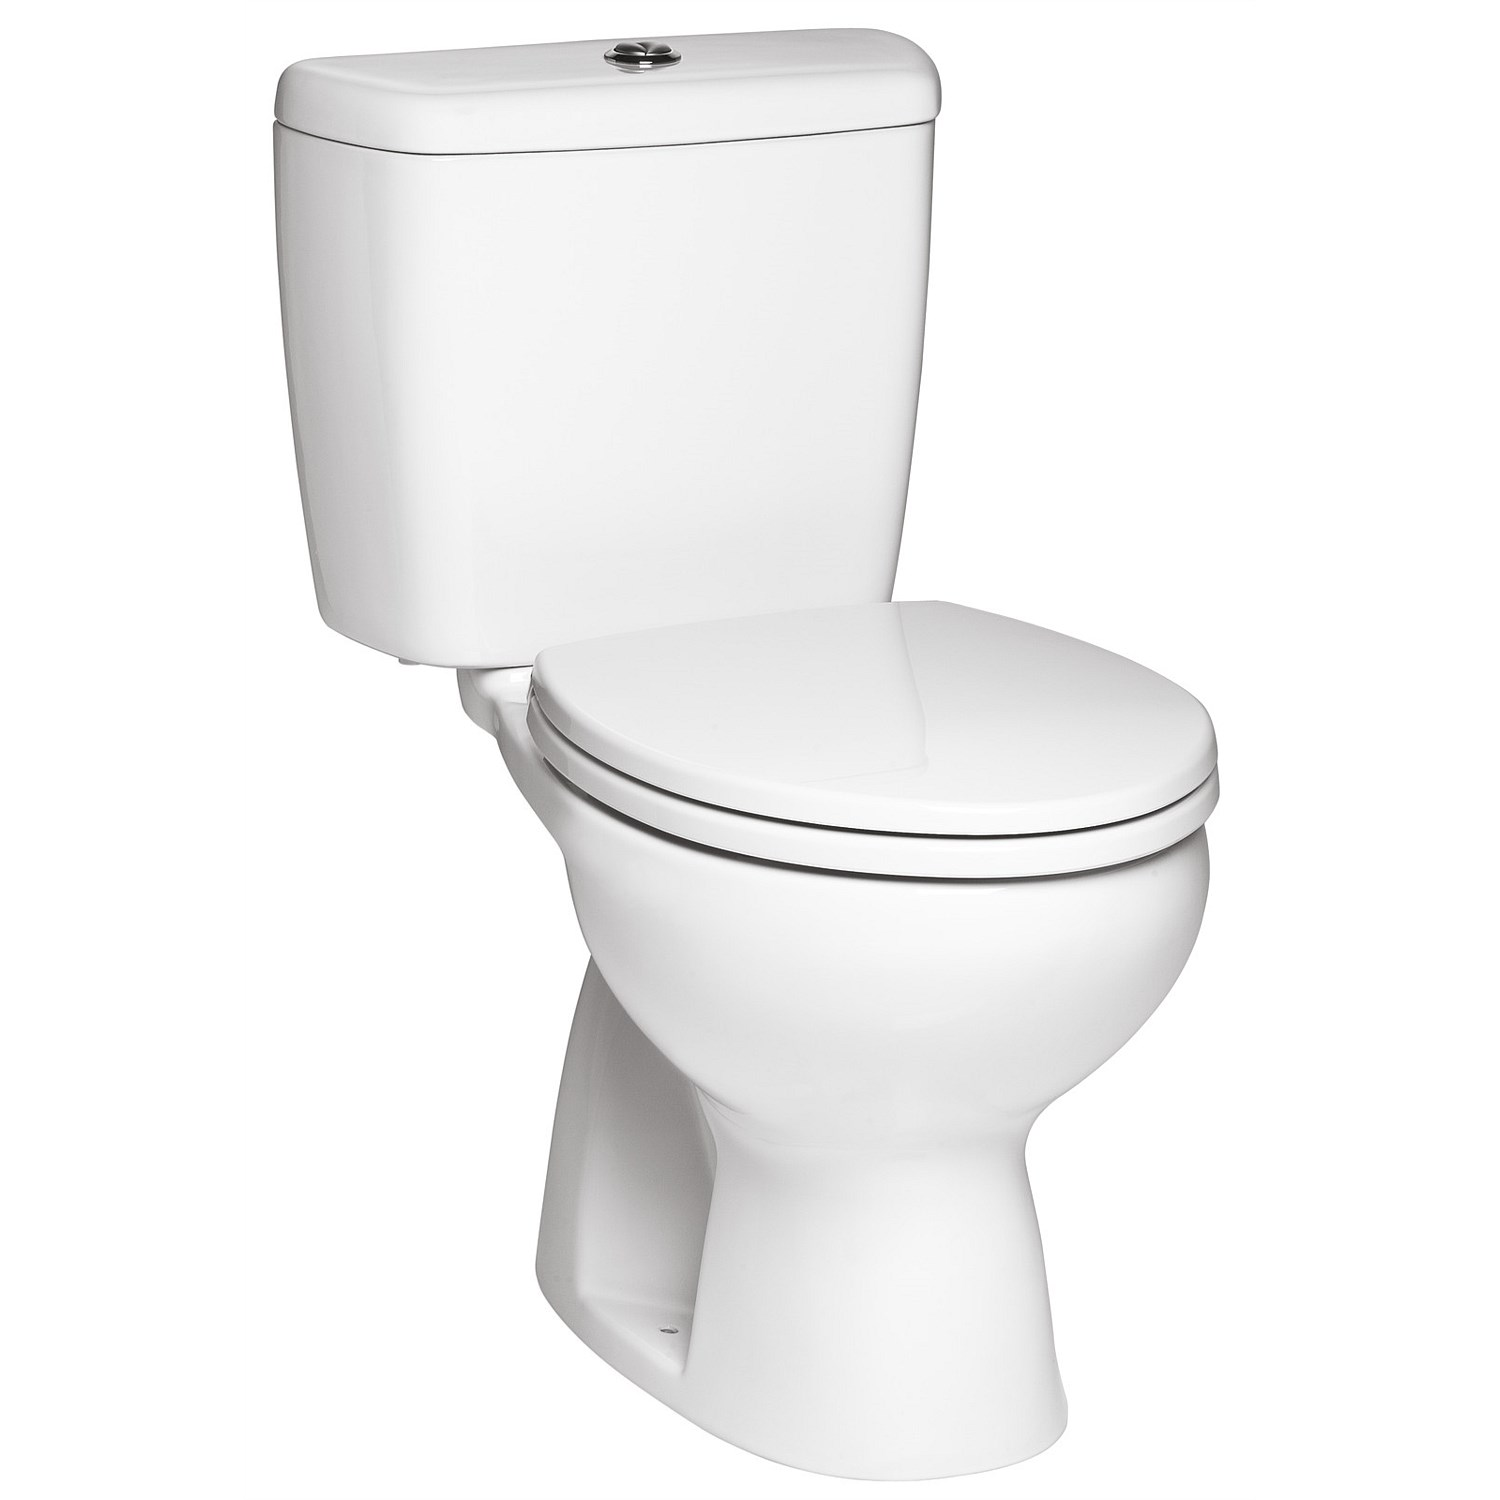 Toilet Suites Plumbing World Toto Sintra Close Coupled